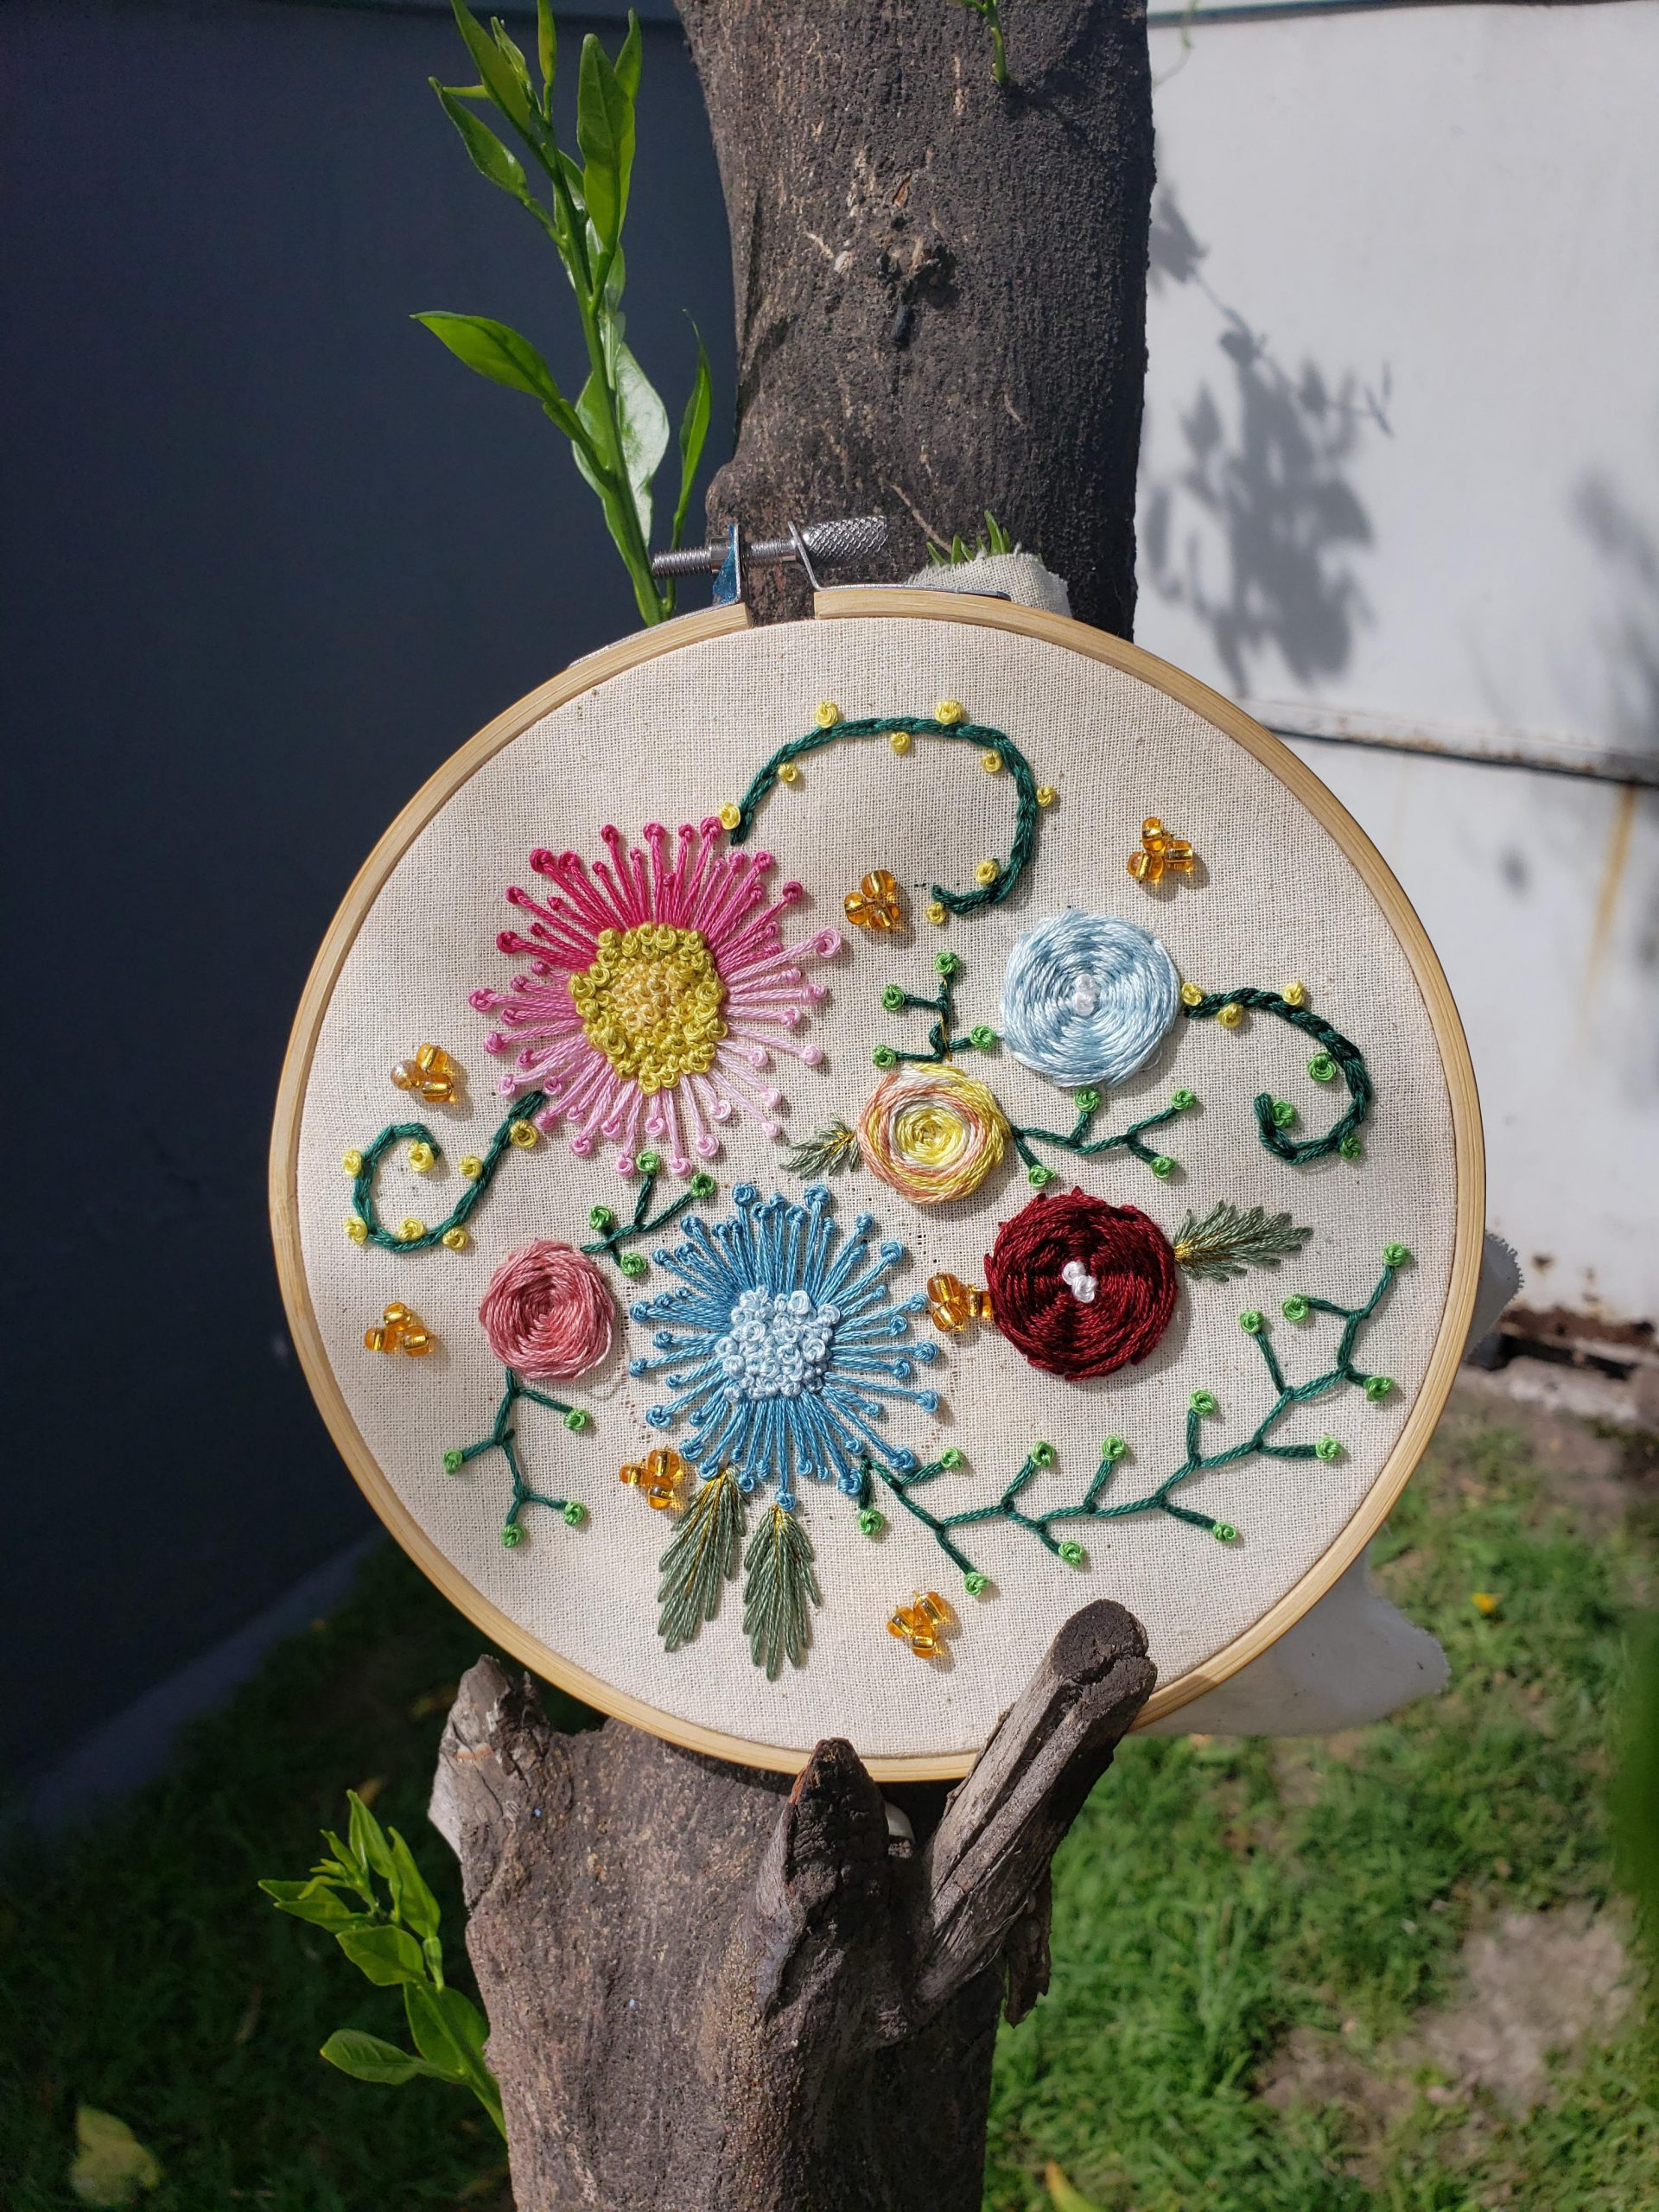 8kp0conly2p51 scaled - Hi, I loved to try some new stitches, what do you think? C: - hobbies, crafts